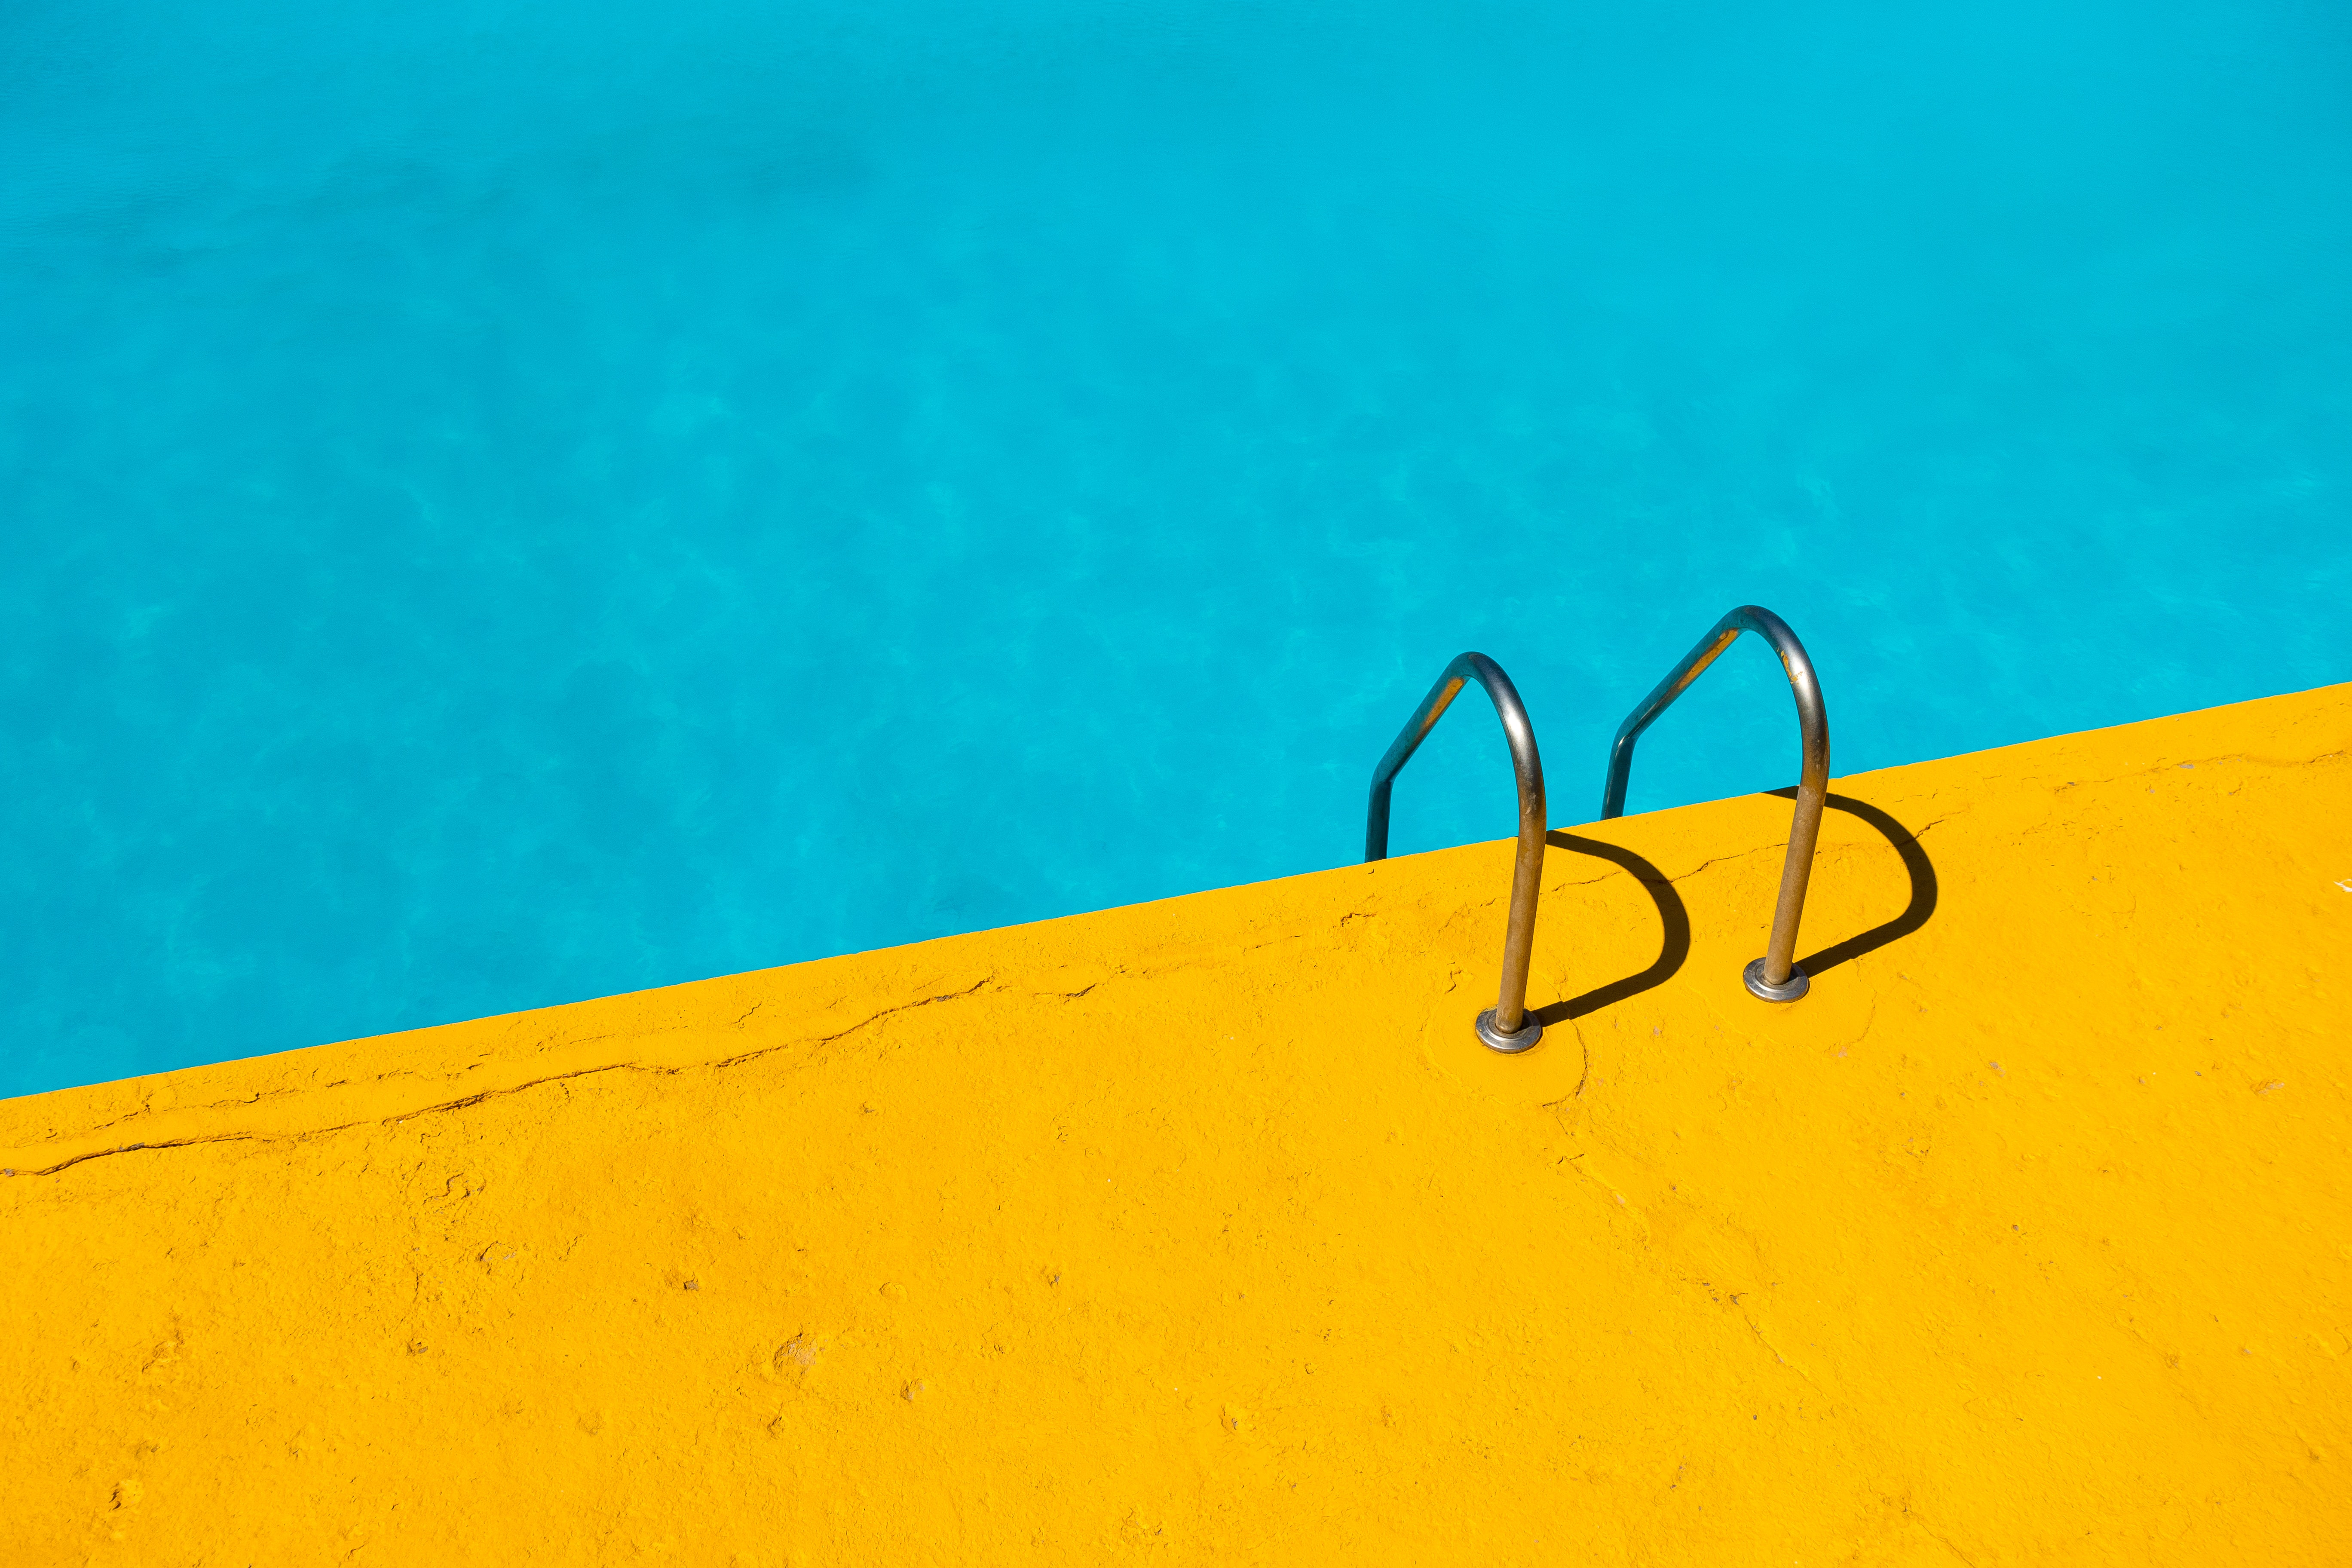 Swimming pool with ladder and yellow border; image by Etienne Girardet, via Unsplash.com.